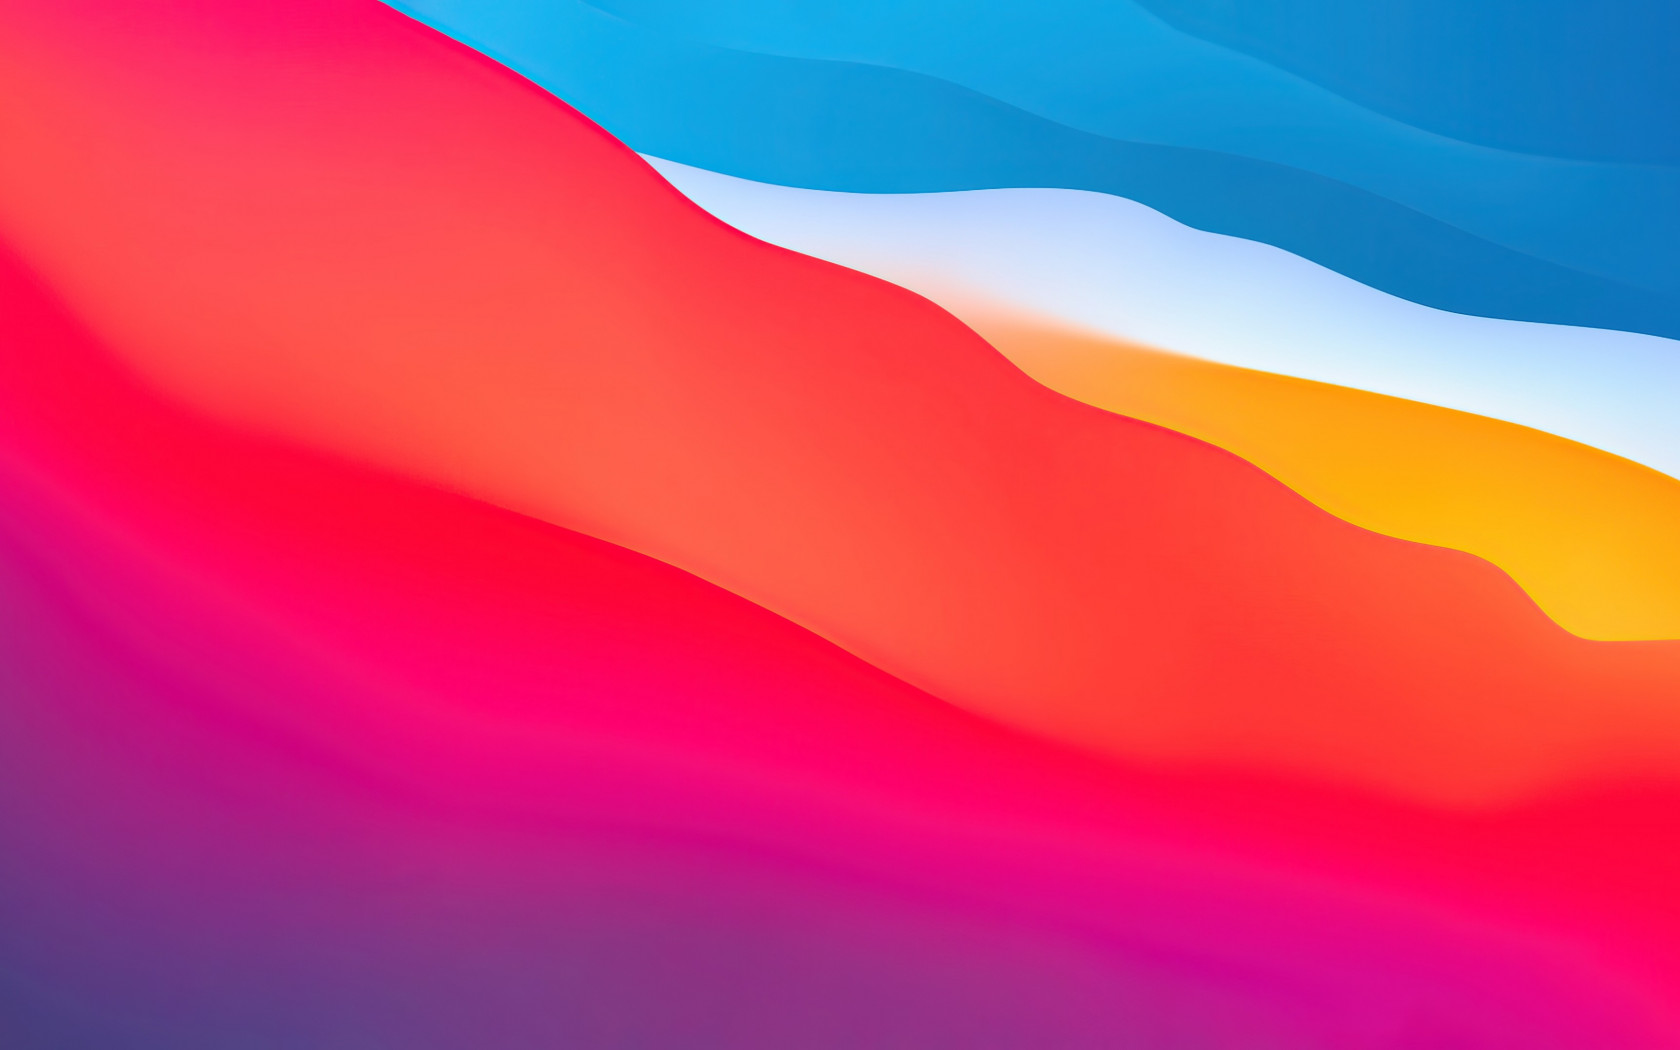 macOS Big Sur WWDC wallpaper 1680x1050